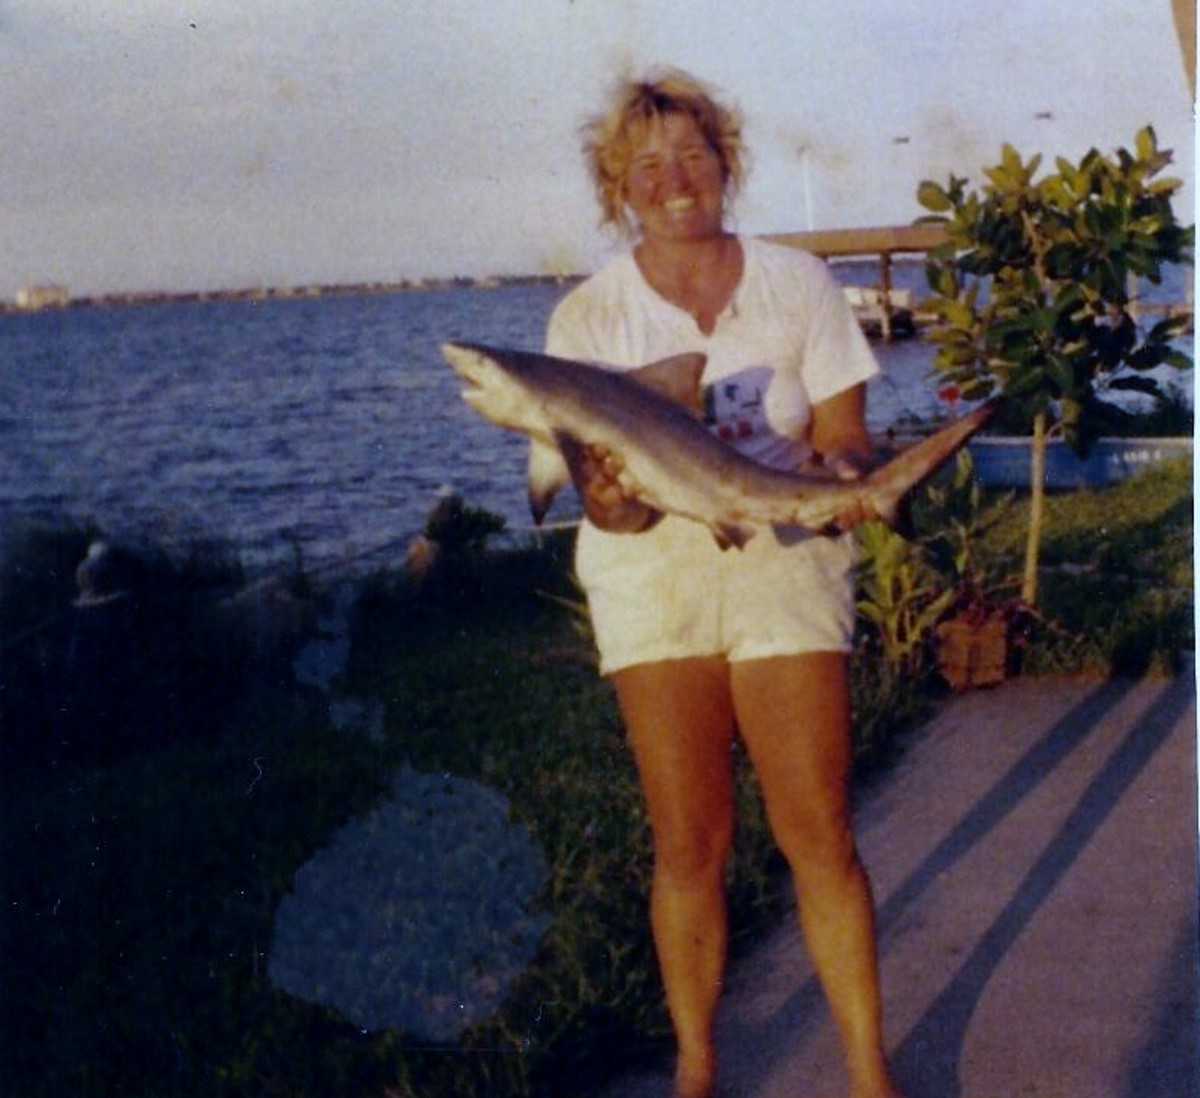 Black Tip Shark caught from the Indian River Lagoon near Malabar Florida.